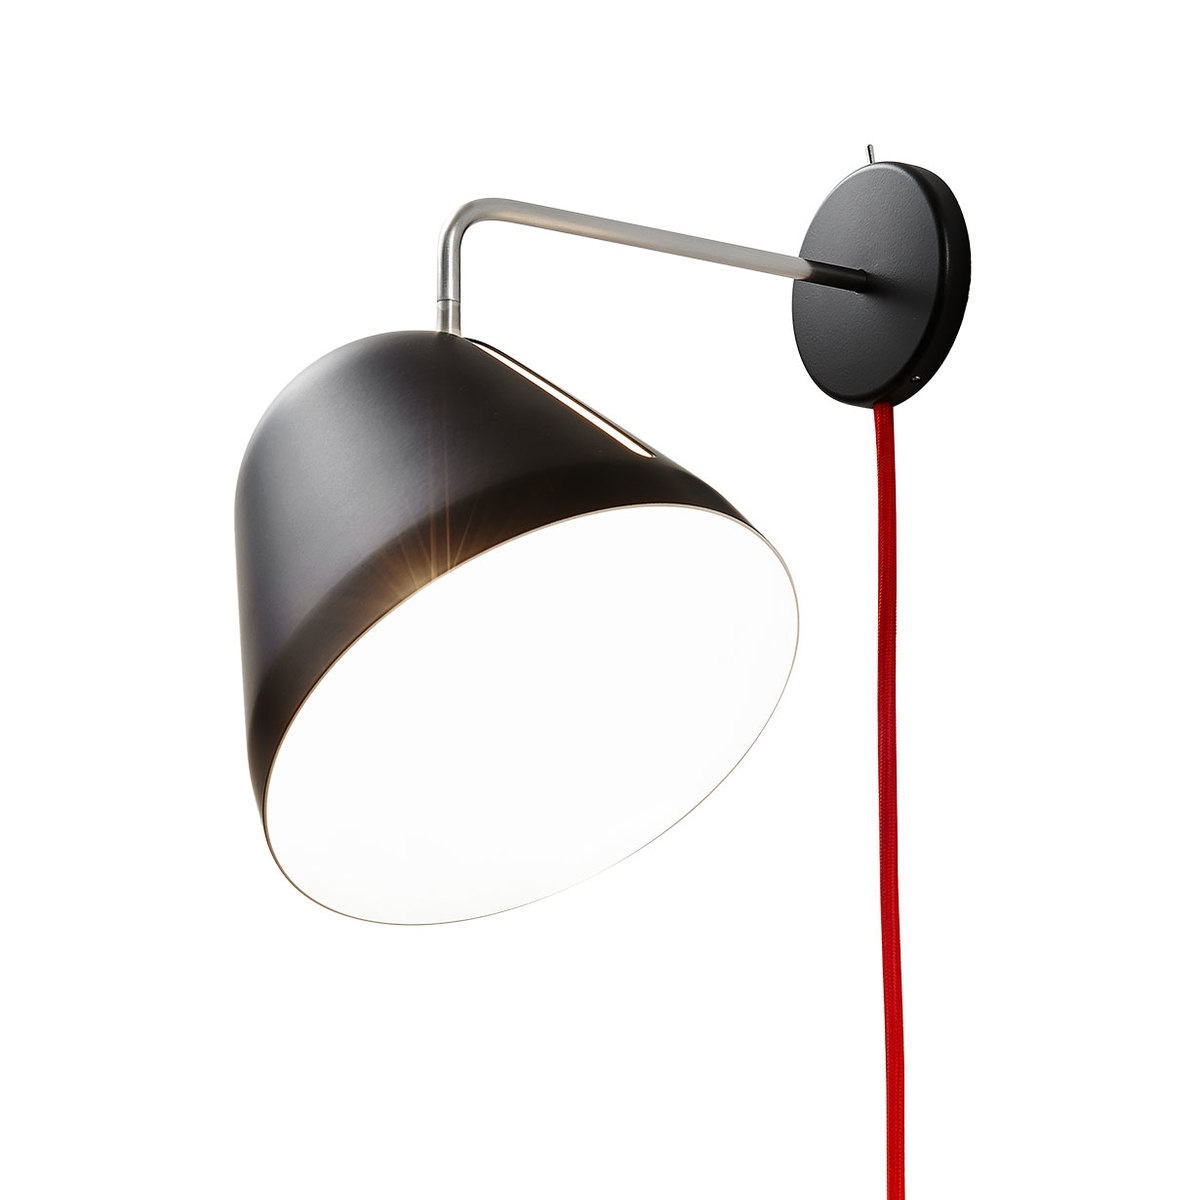 tilt wall lamp with cord and plug by nyta lovethesign. Black Bedroom Furniture Sets. Home Design Ideas